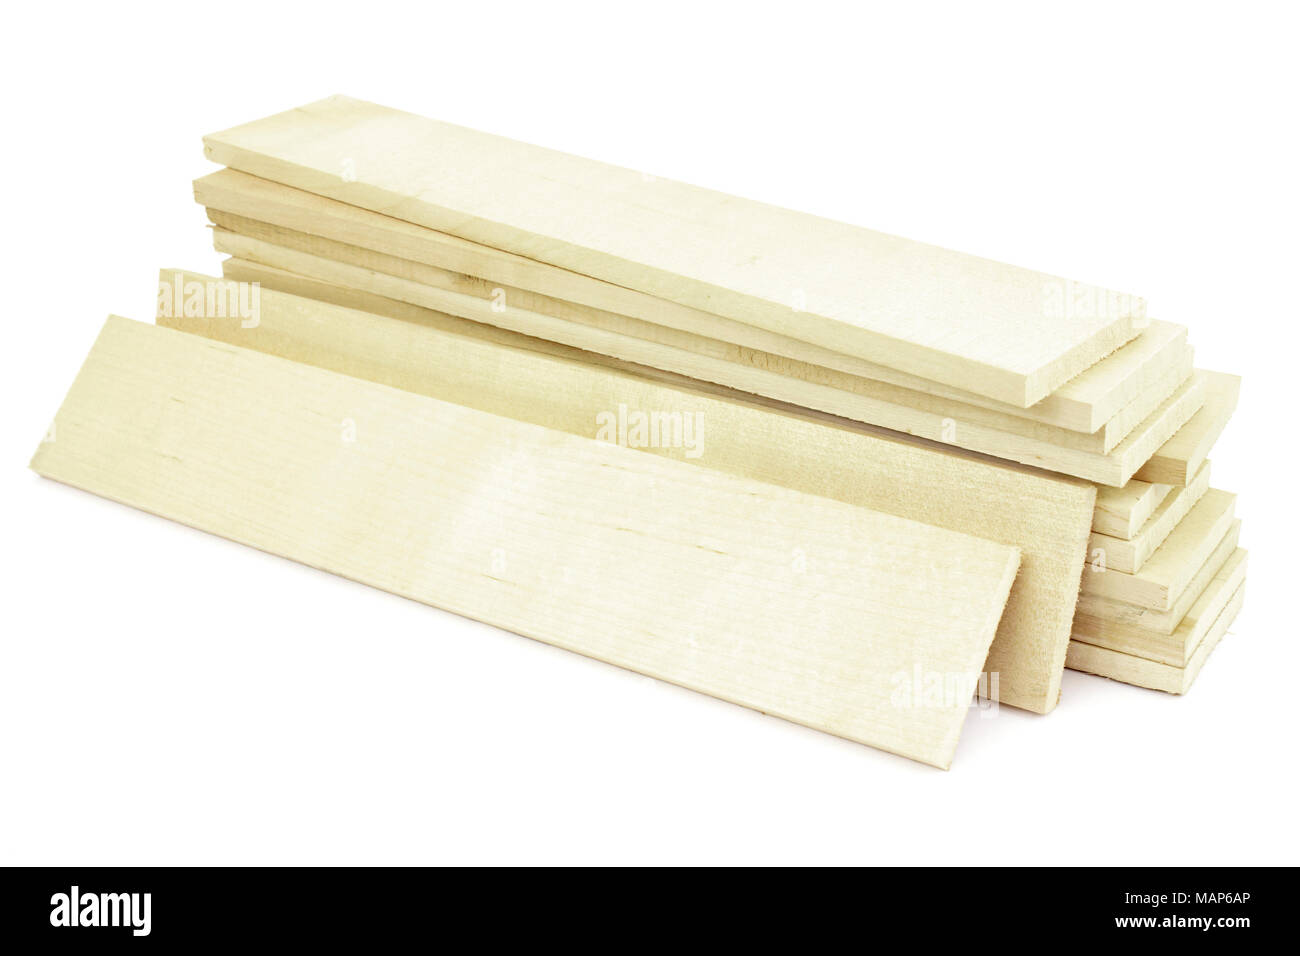 Planks for the manufacture of wooden containers - Stock Image